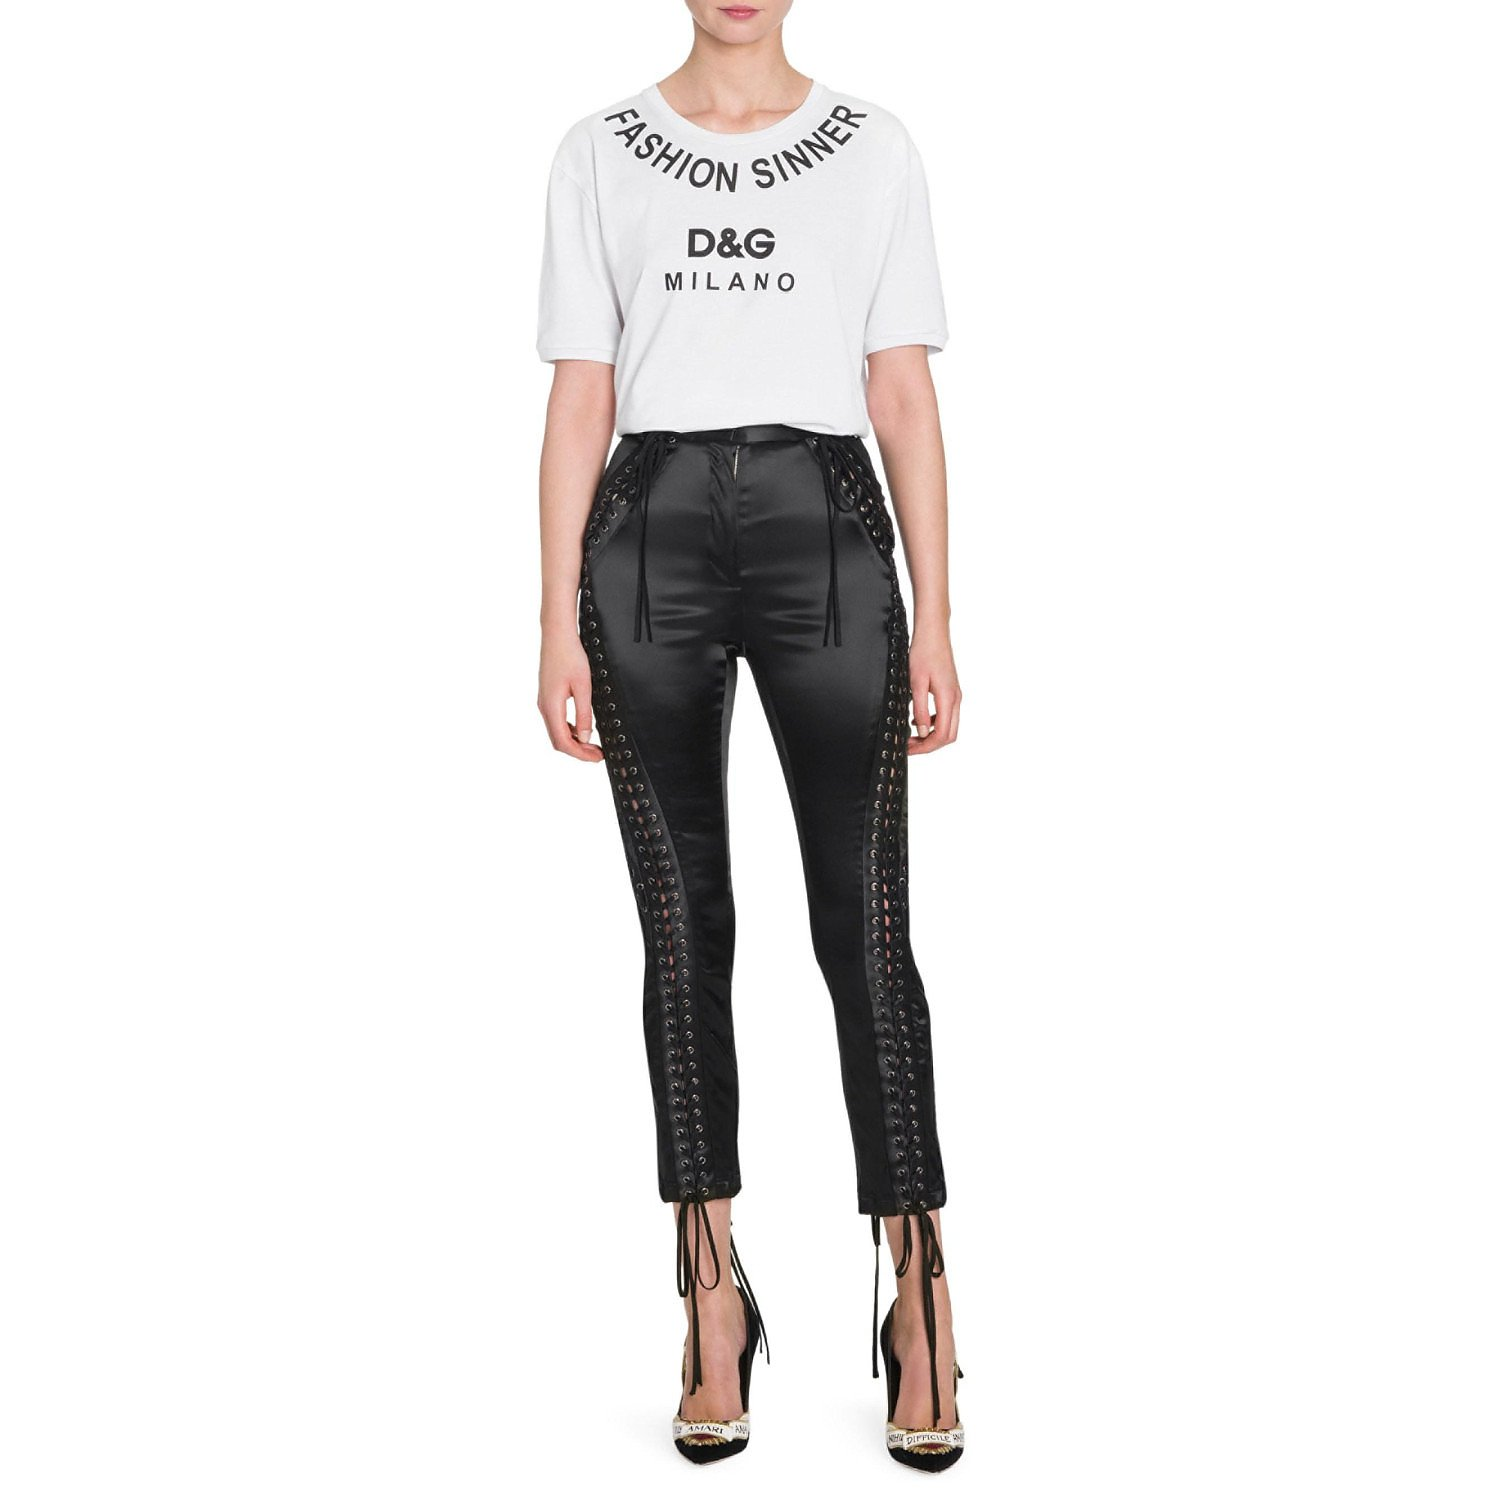 DOLCE & GABBANA Lace-Up Satin Trousers